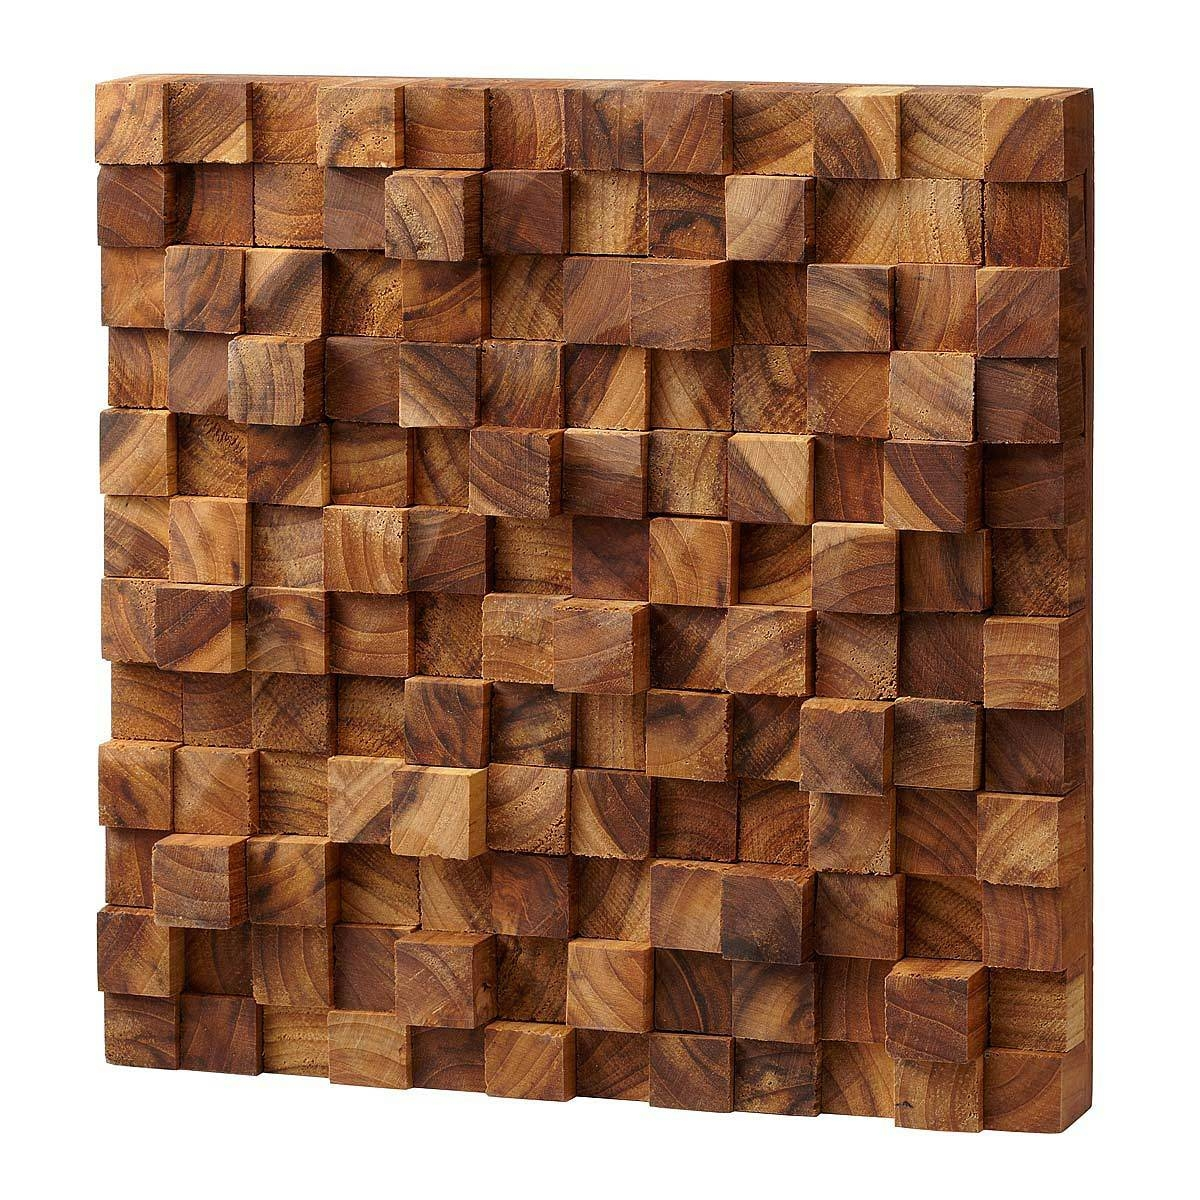 Square Takara Wall Art | Teak Wood, 3d Art | Uncommongoods Throughout Newest Wall Art On Wood (View 8 of 20)